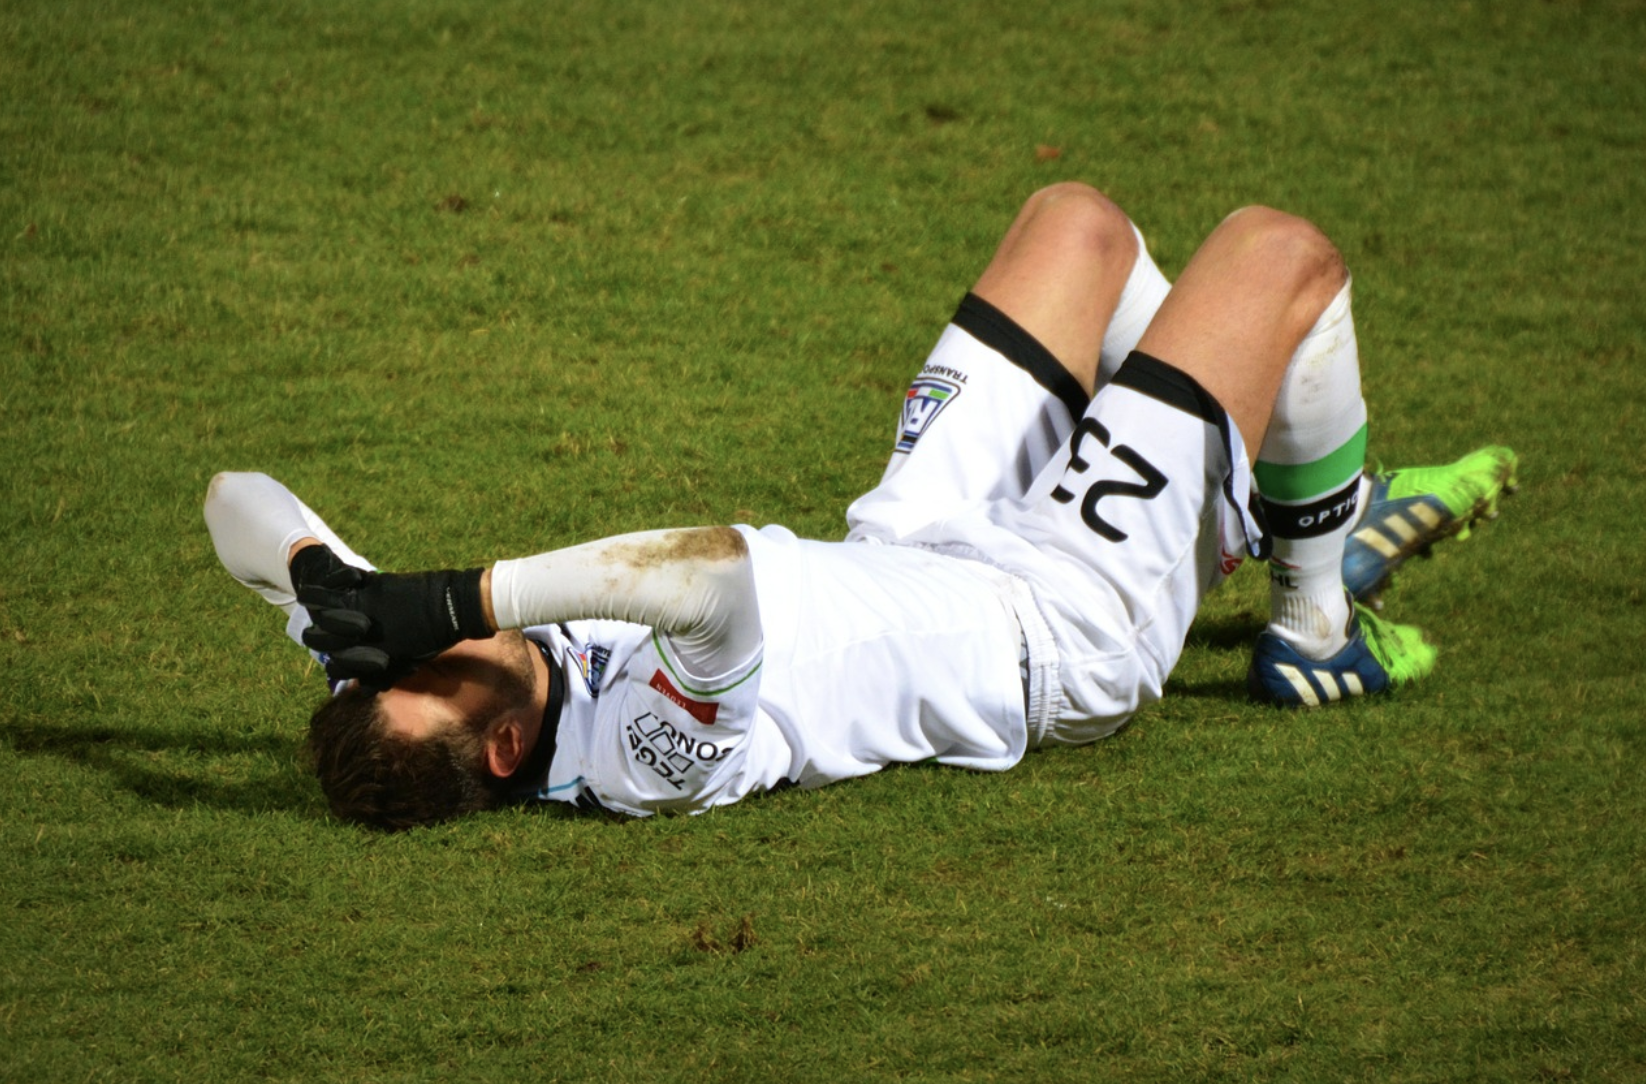 12 tips for preventing sports injuries